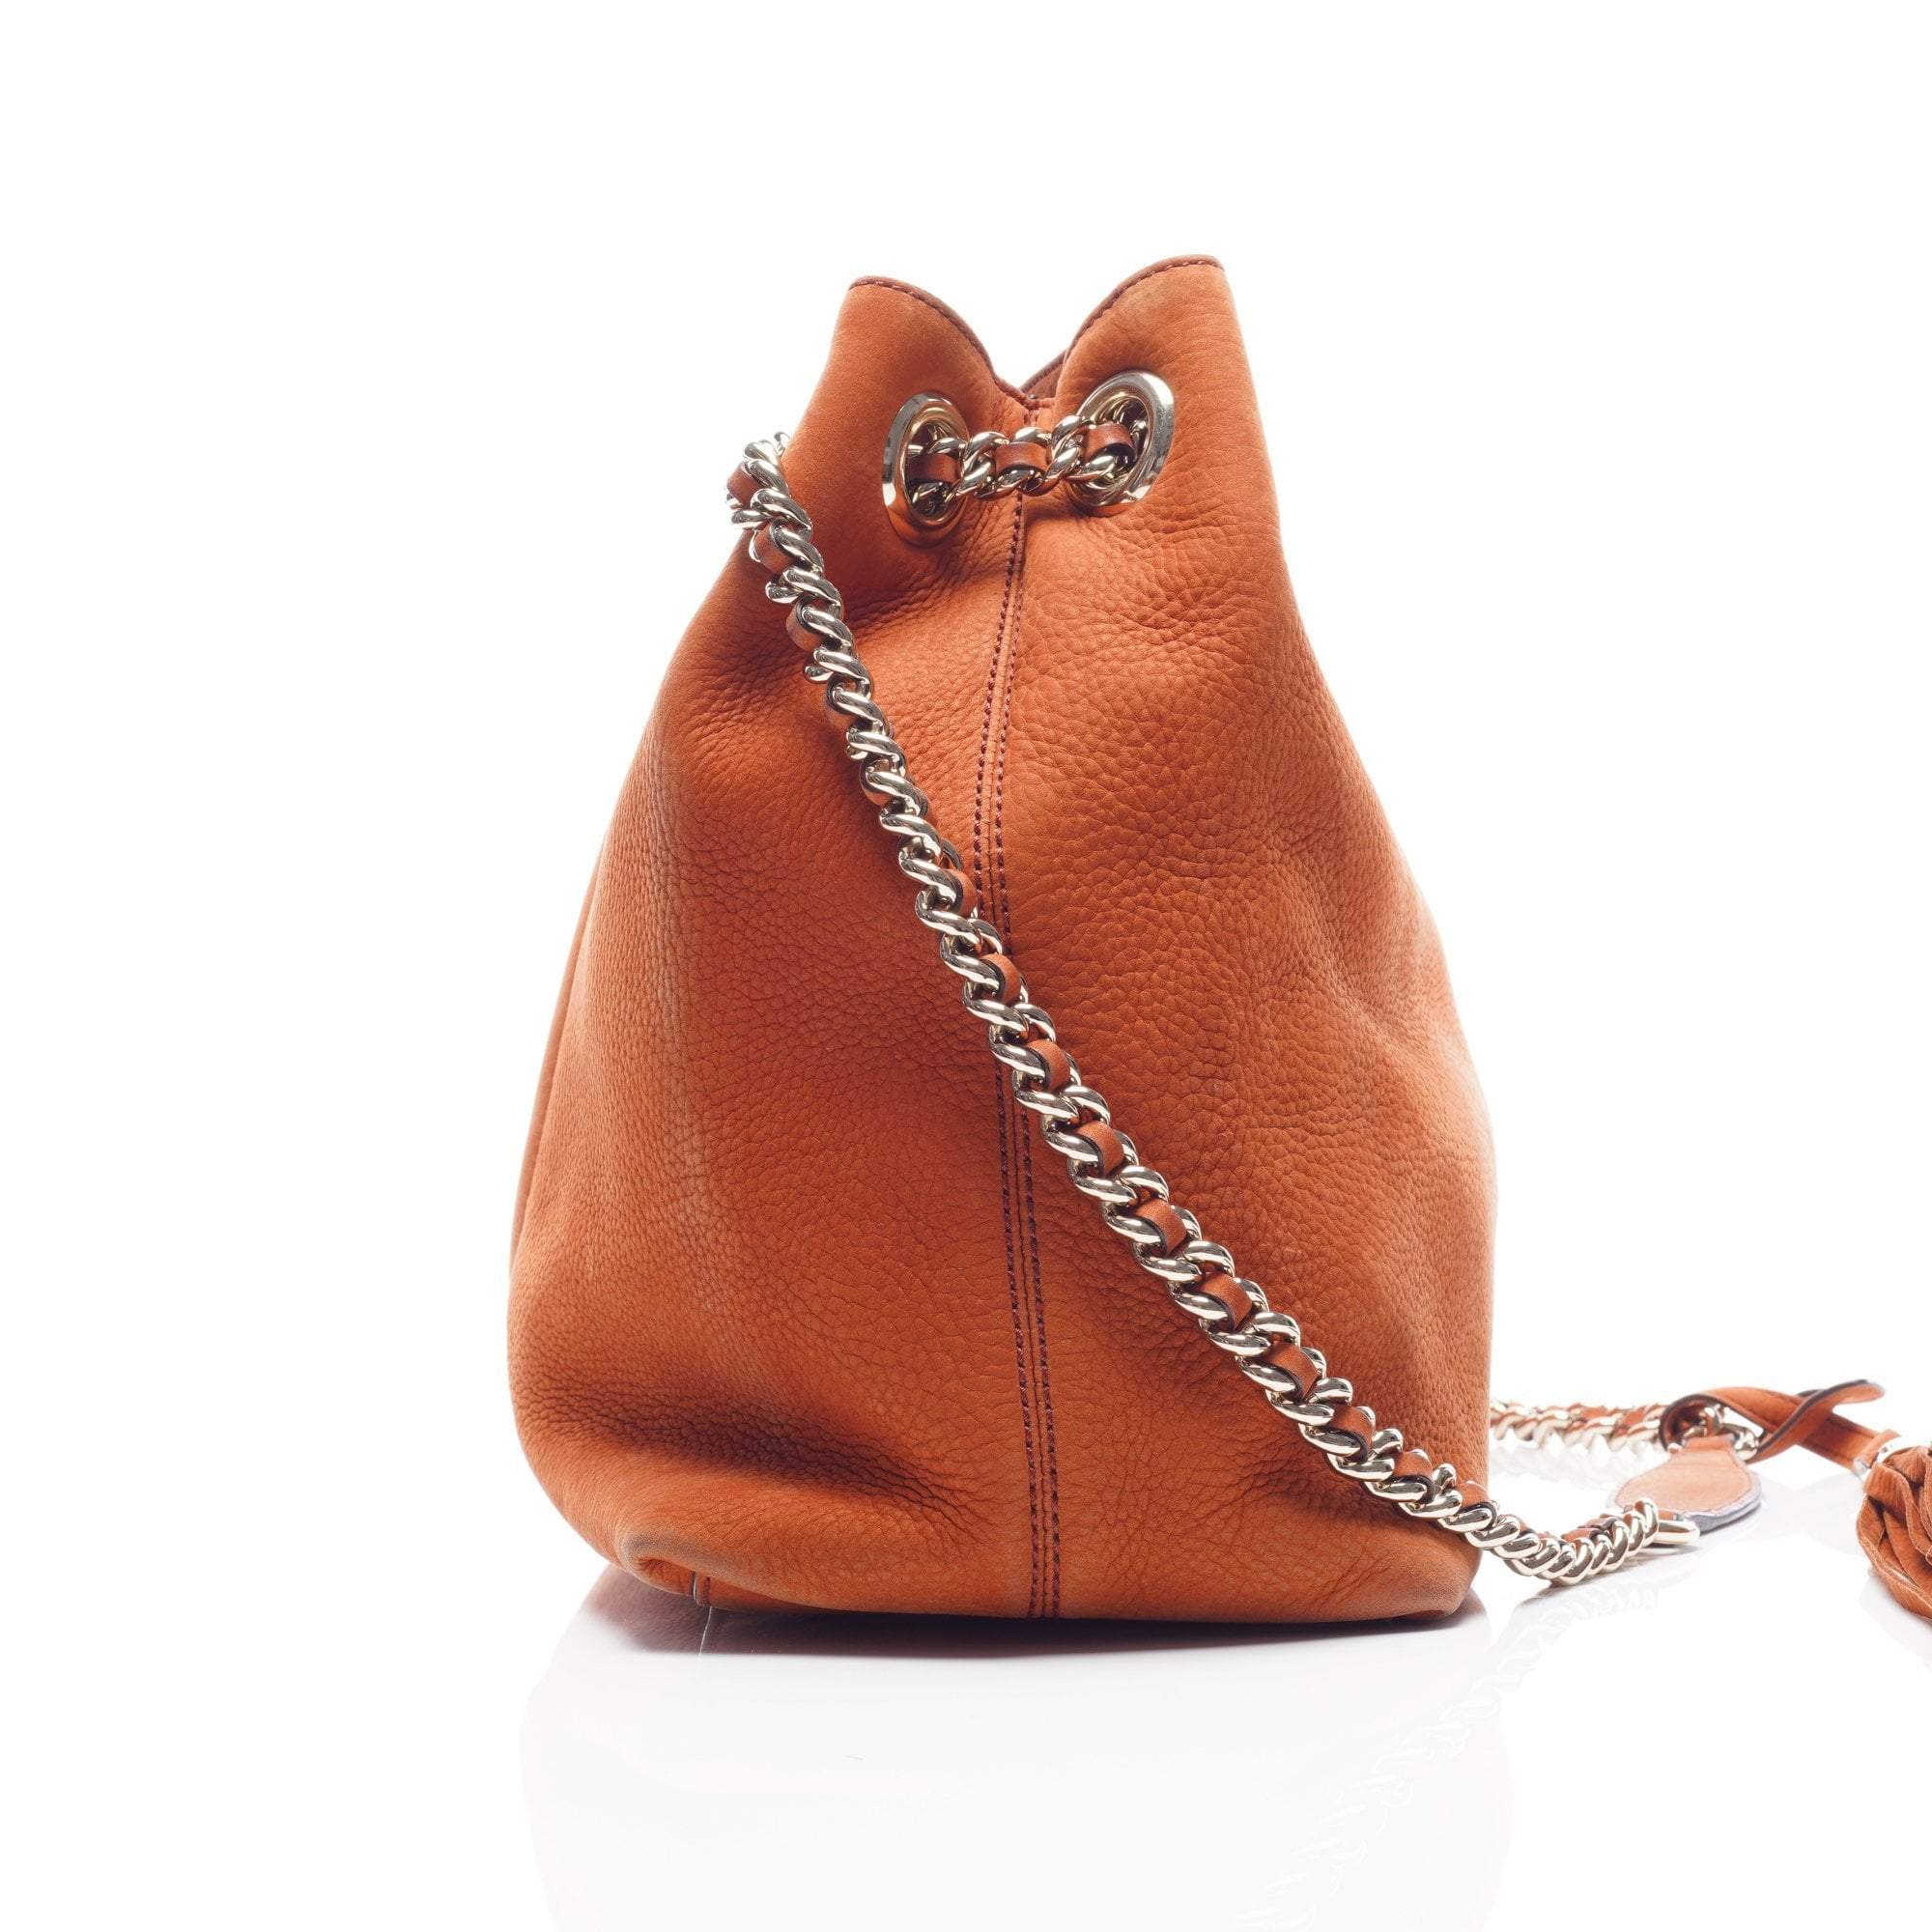 Gucci Brown Nubuck Leather Soho Chain Tote Bag